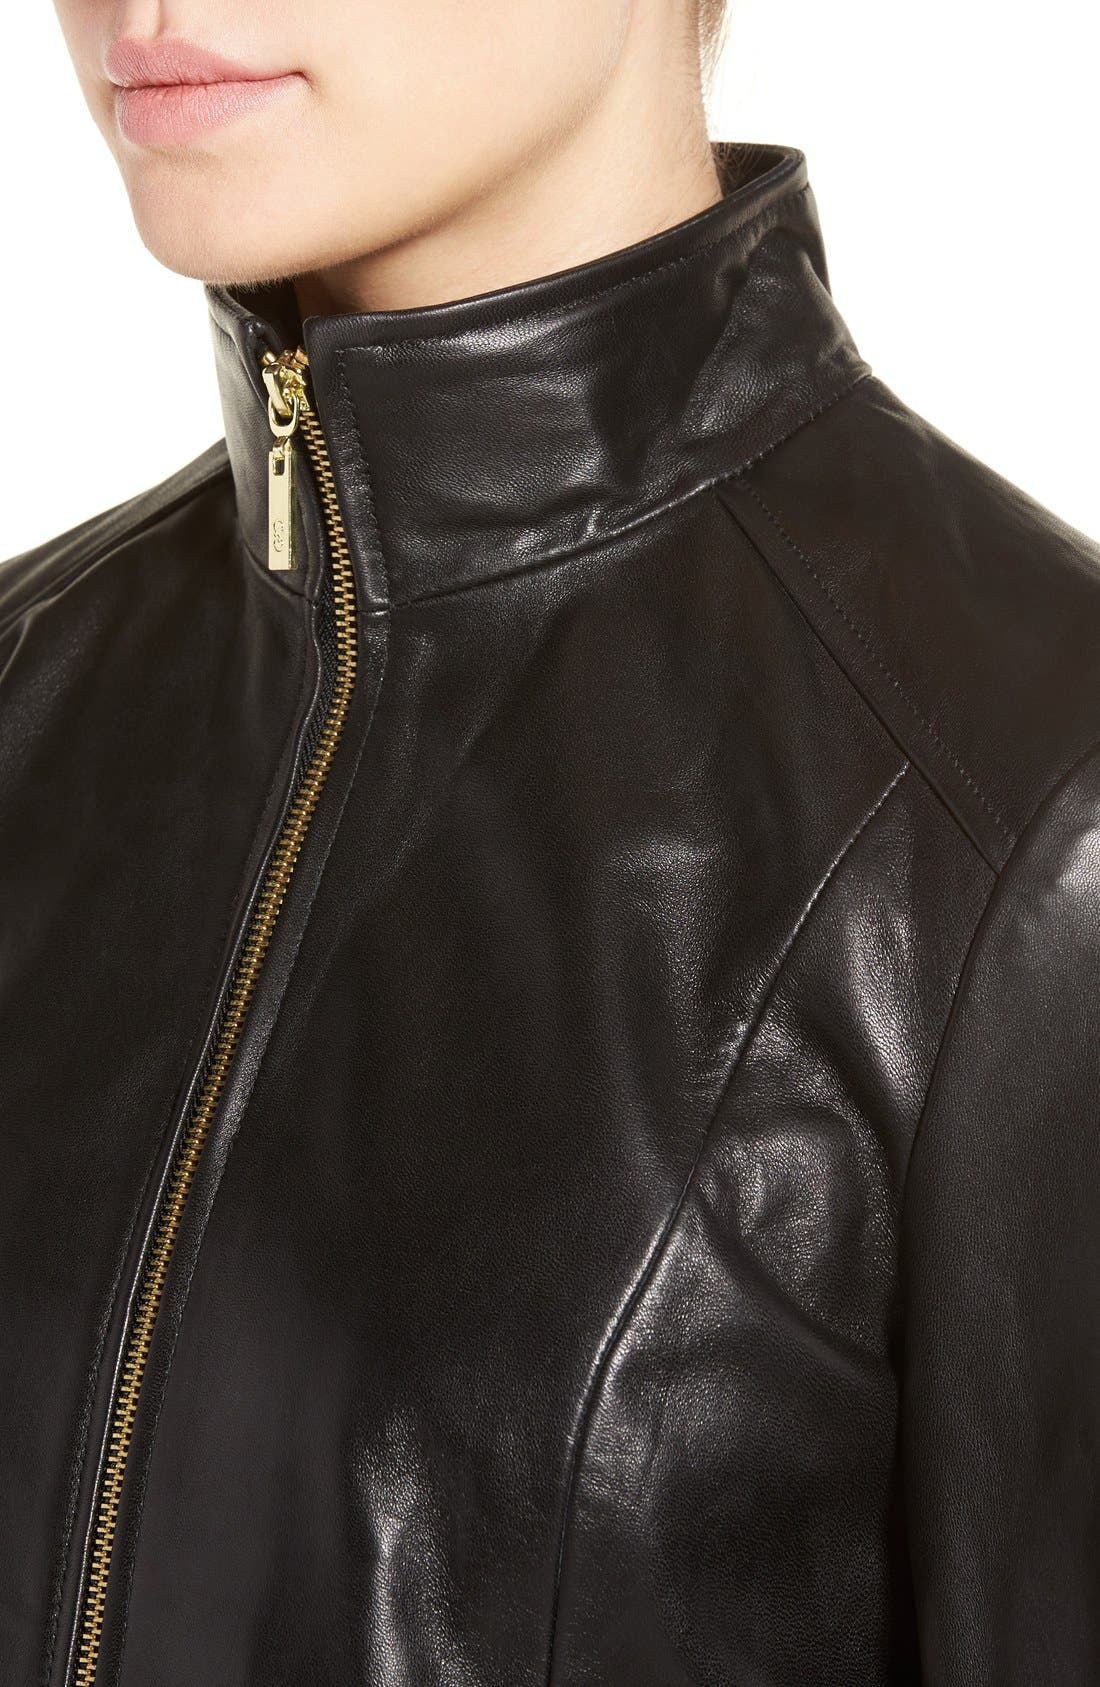 Wing Collar Leather Jacket,                             Alternate thumbnail 4, color,                             001